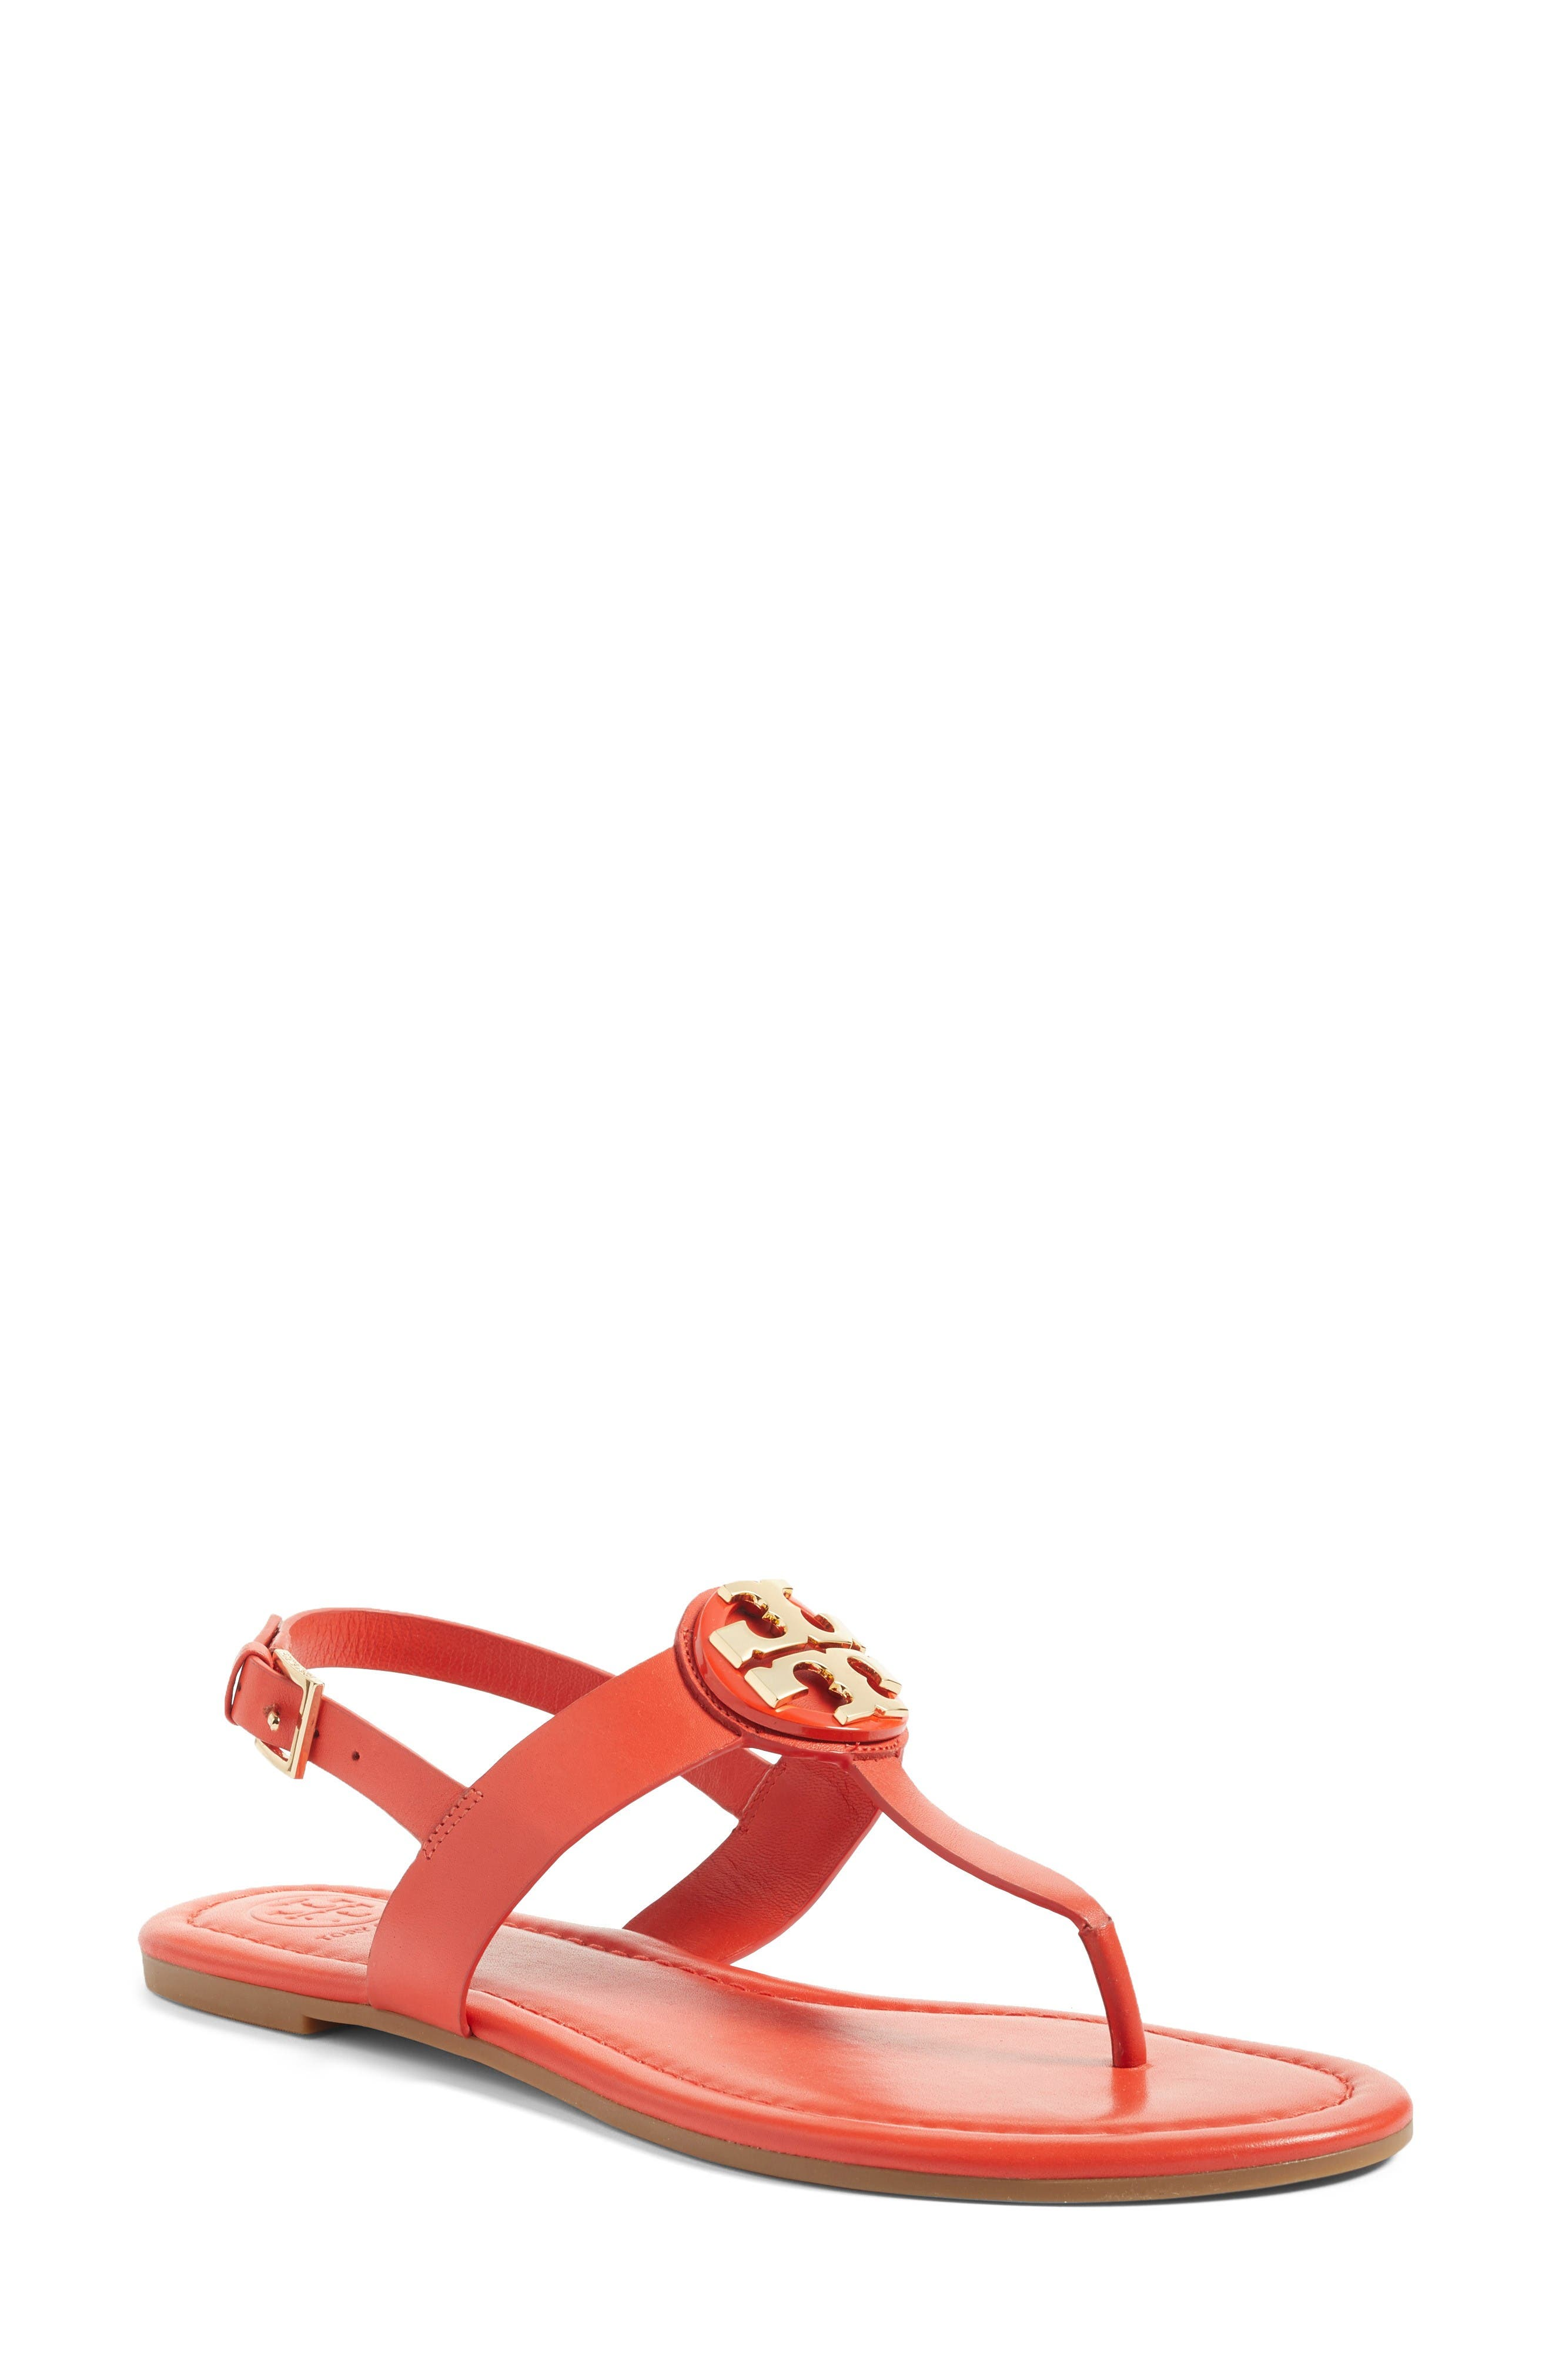 Tory Burch Bryce Sandal (Women)